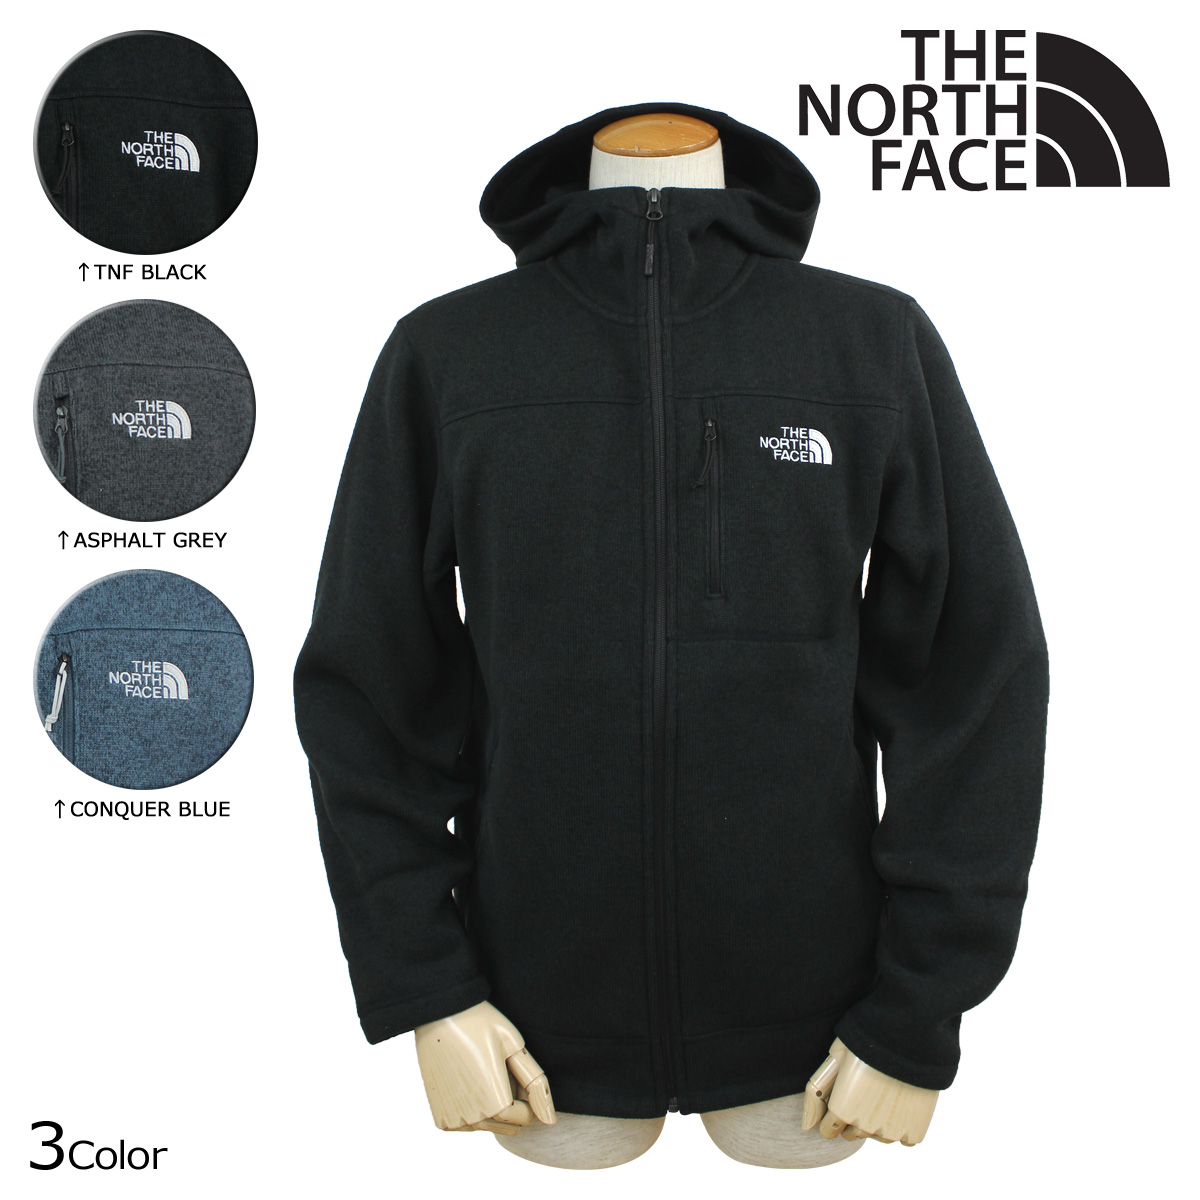 0095f2fb84e56 Whats up Sports  THE NORTH FACE north face fleece jacket MEN S GORDON LYONS HOODIE  jacket